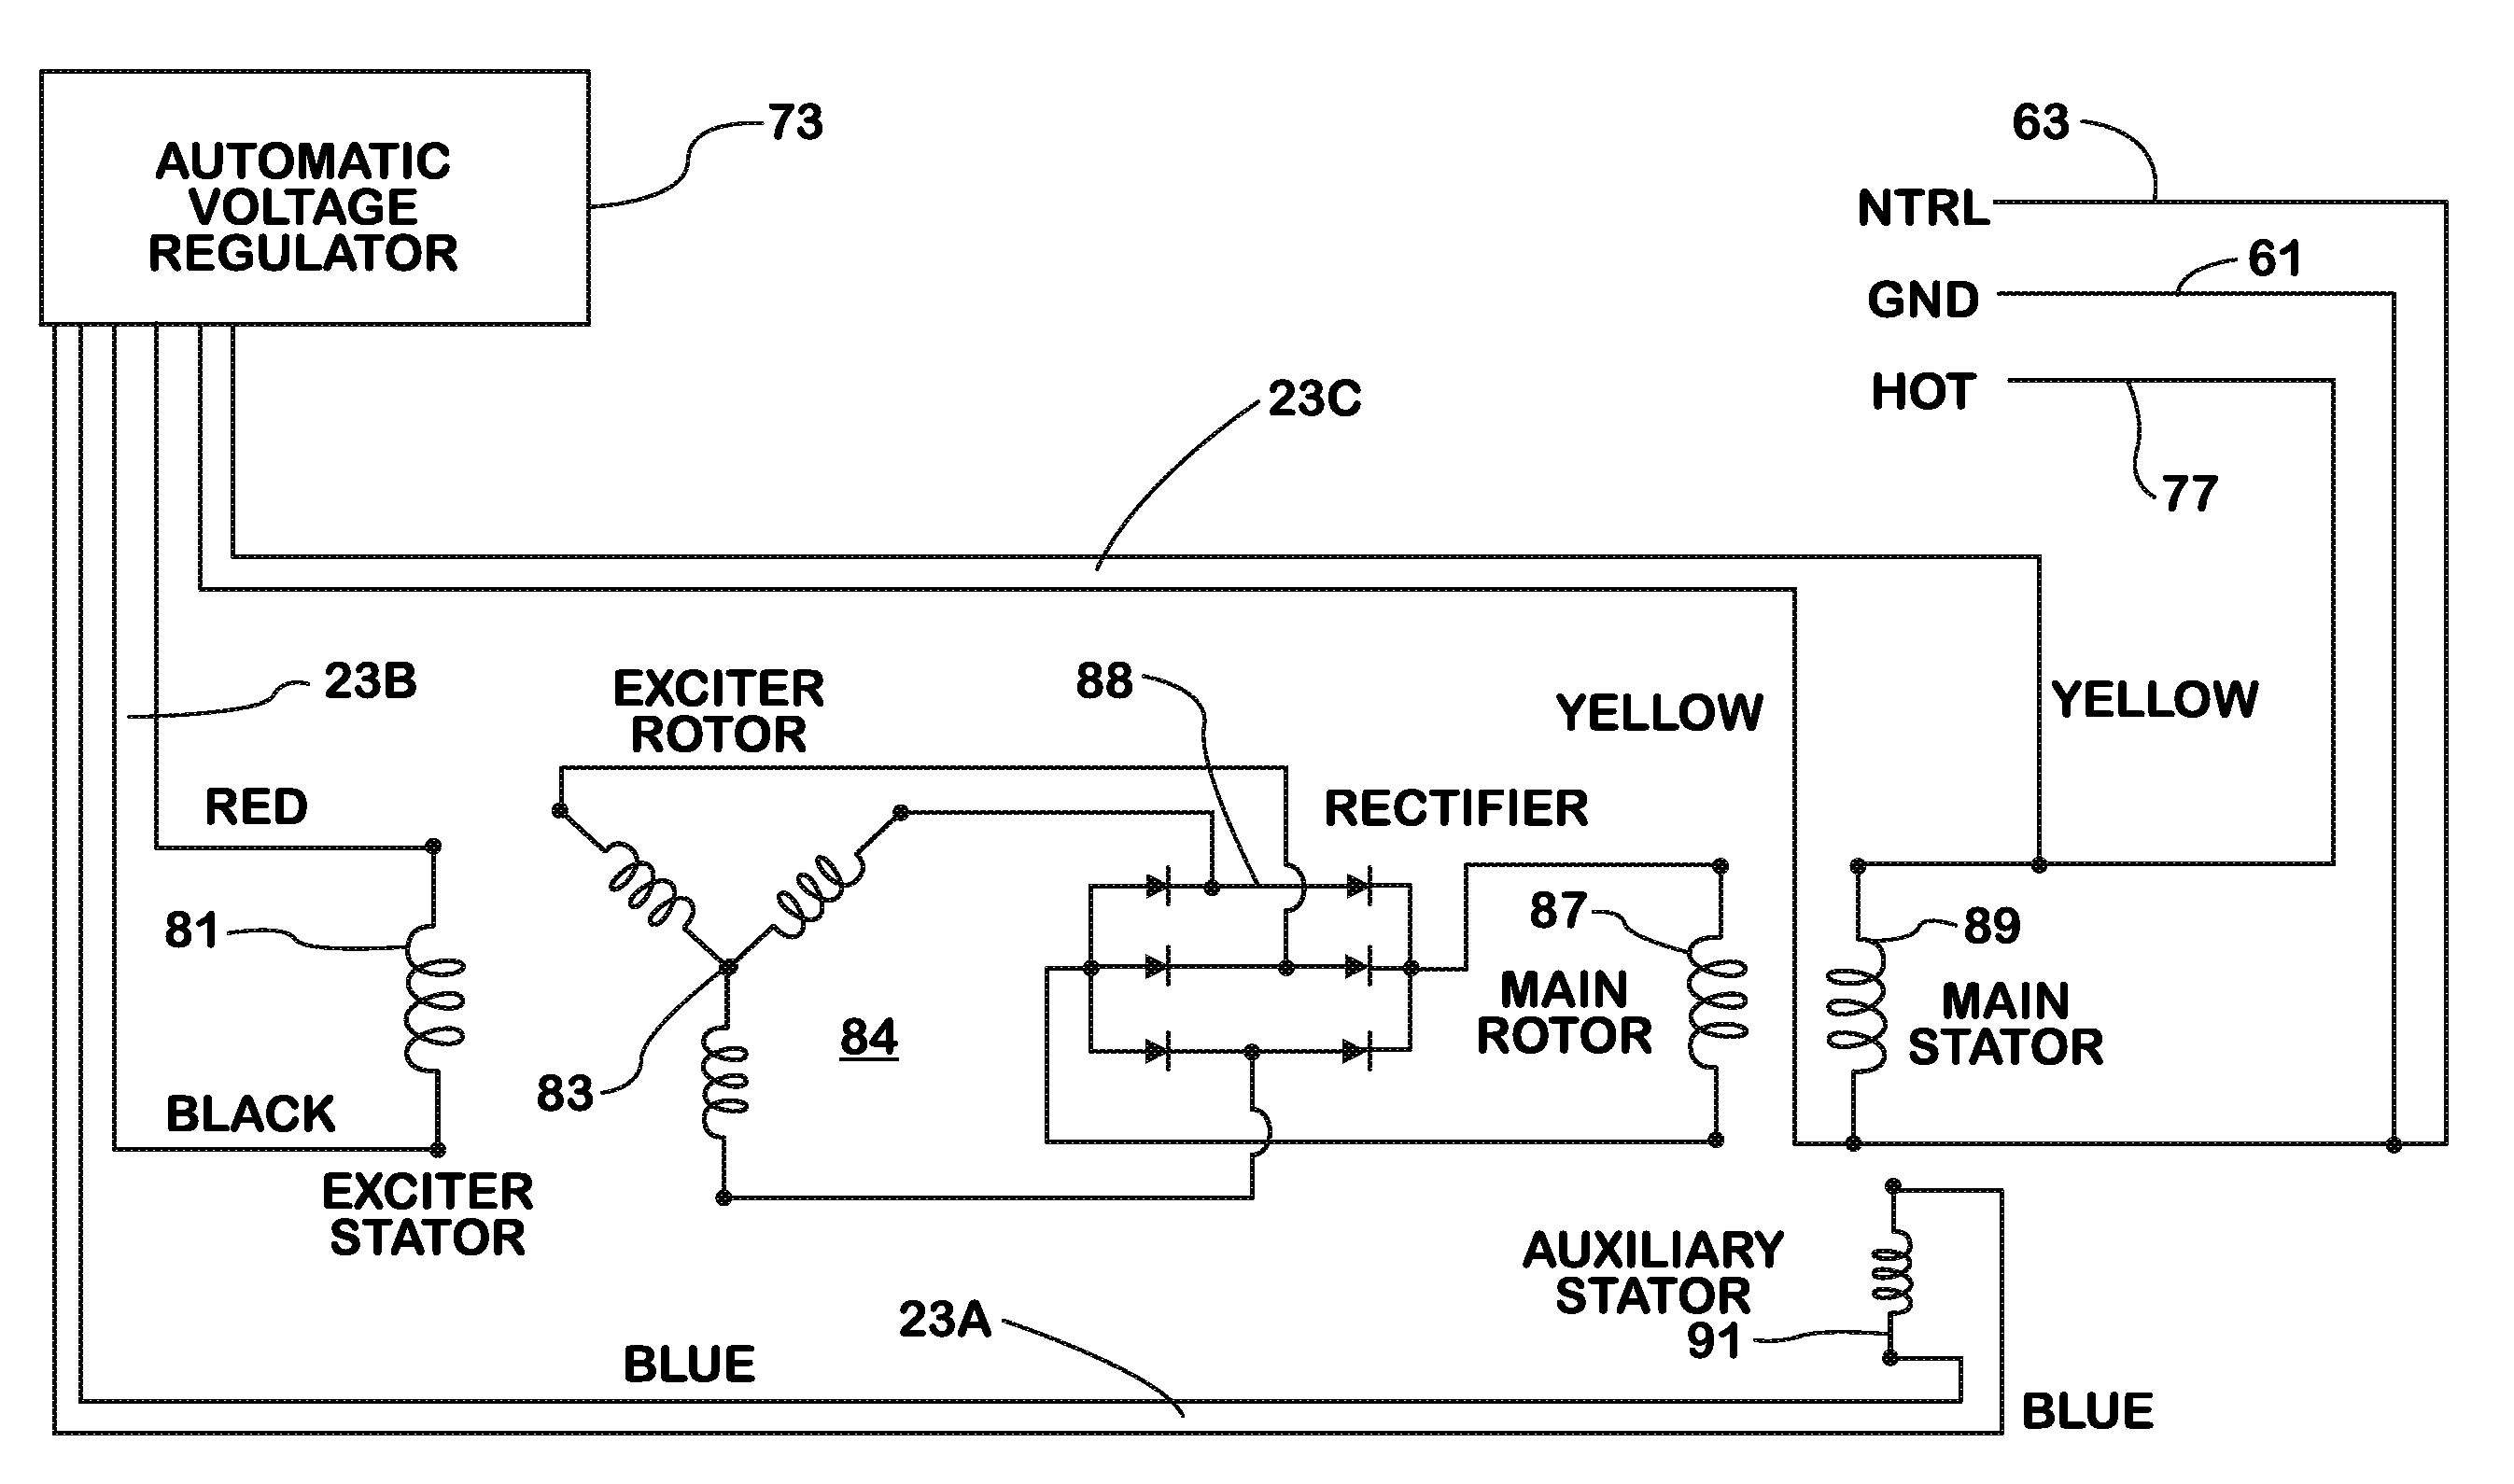 patent us8283942 auxiliary power unit diagnostic tool google inside ac electrical wiring diagrams generator?resize\=665%2C393\&ssl\=1 onan 4000 generator wiring diagram 3 phase wiring diagrams onan 6500 commercial generator wiring diagram at panicattacktreatment.co